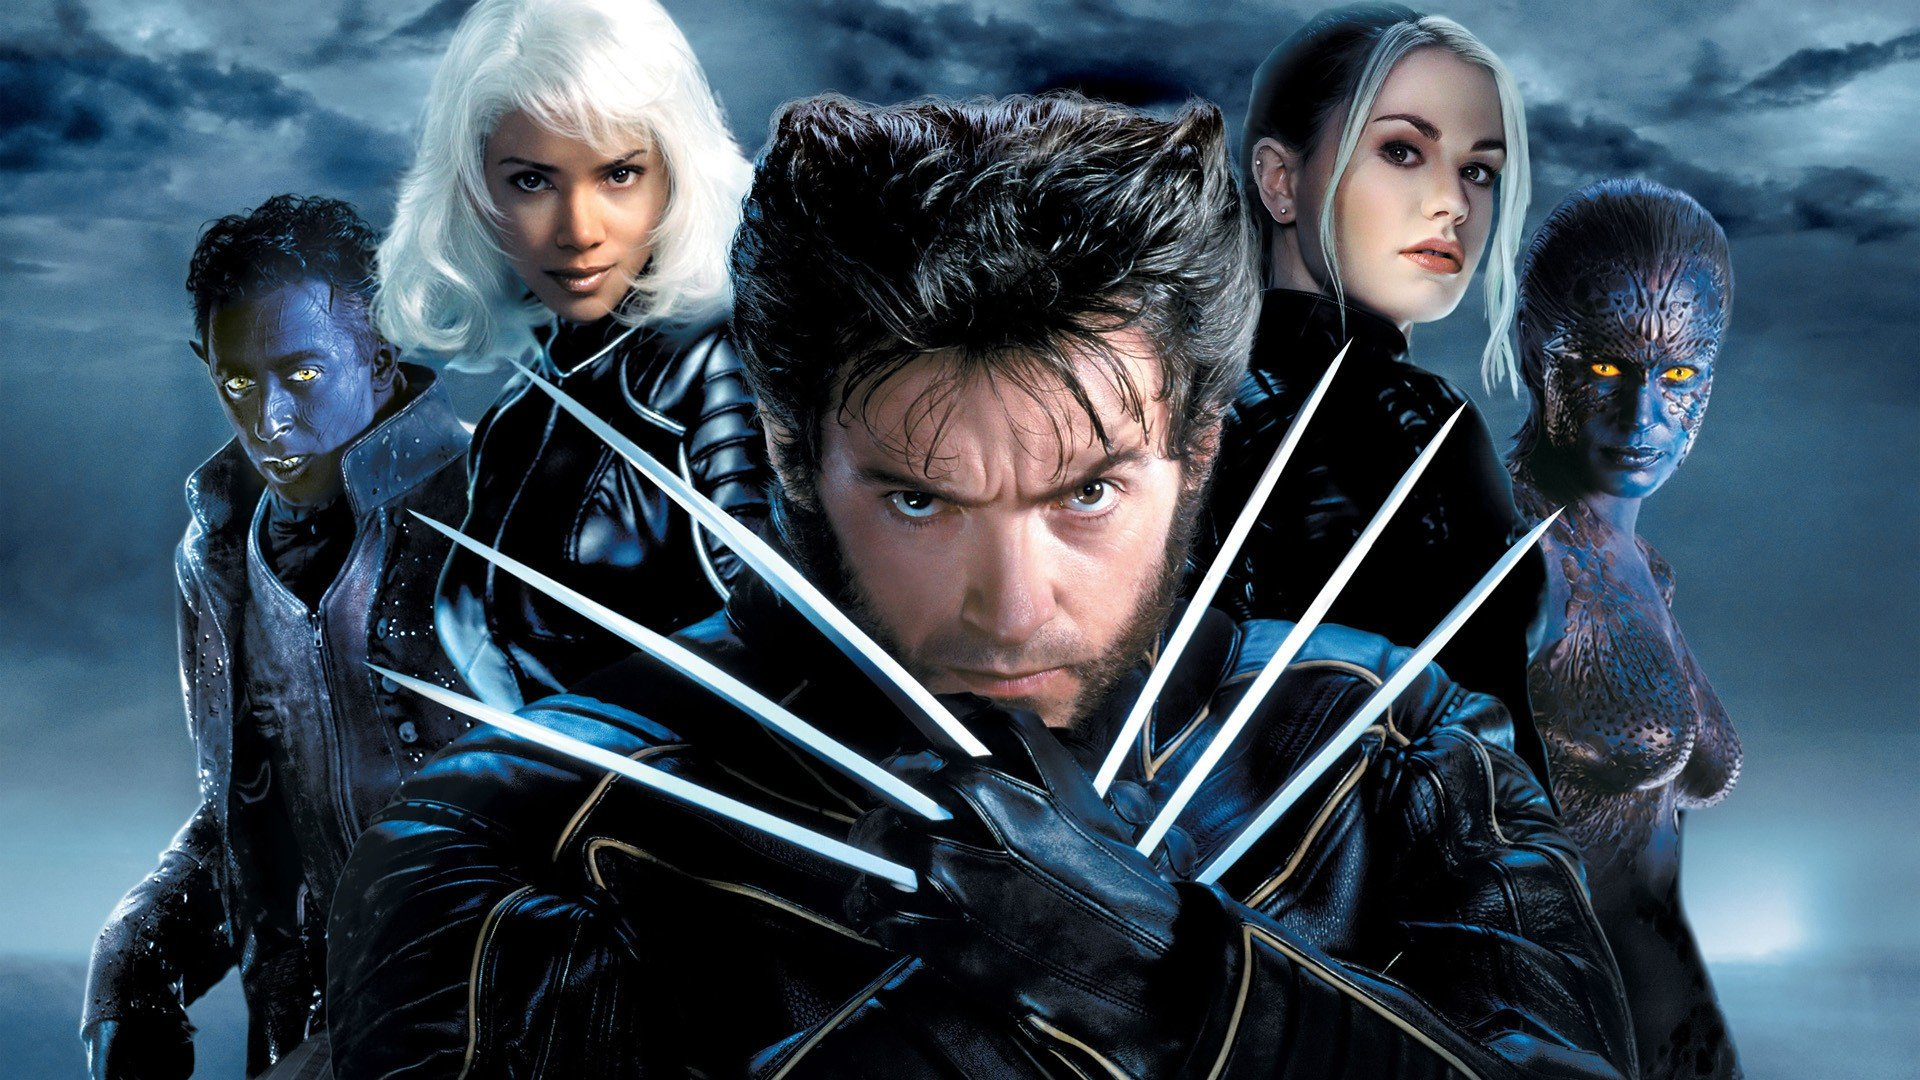 The X-Men Movies Aren't Marvel, Now They've Been Rebranded As This